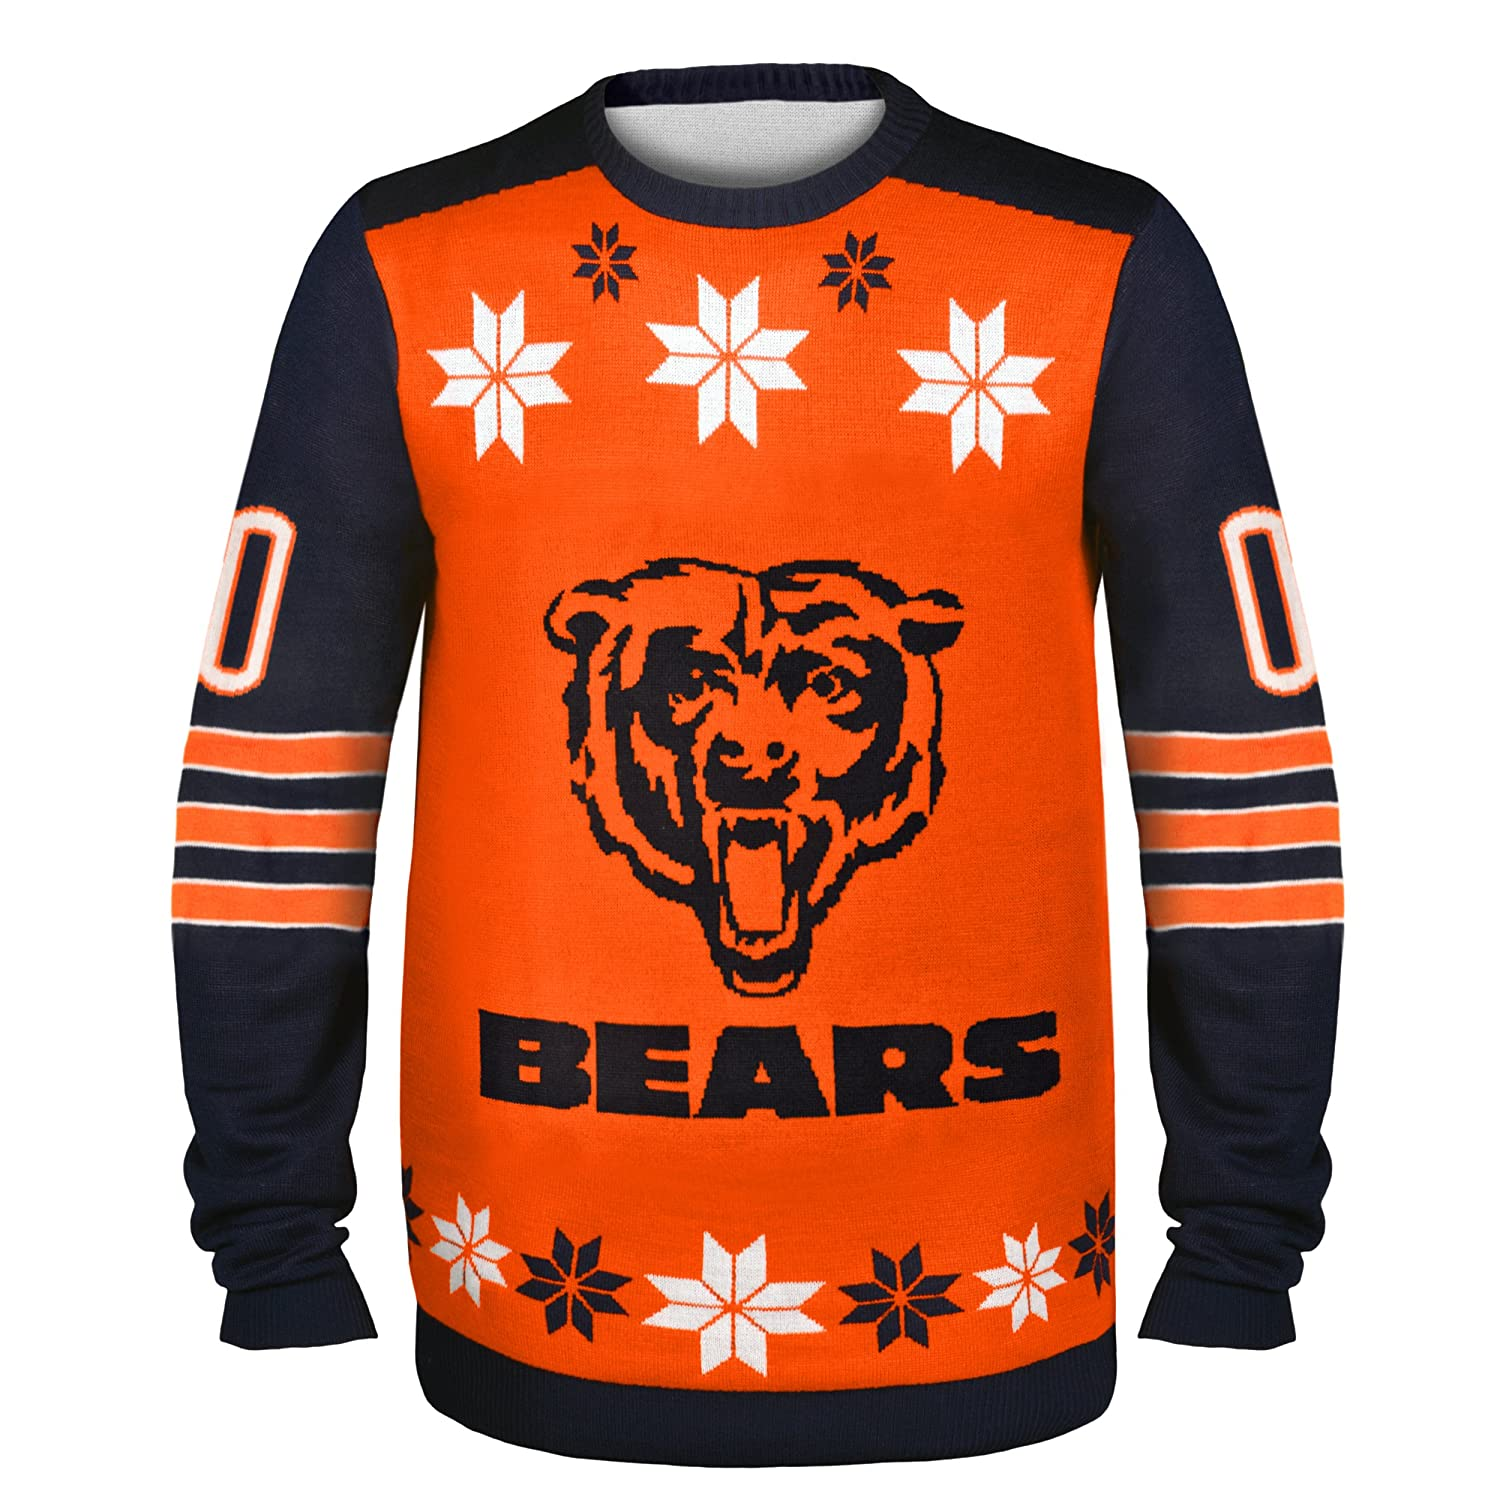 NFL Jersey Sweater